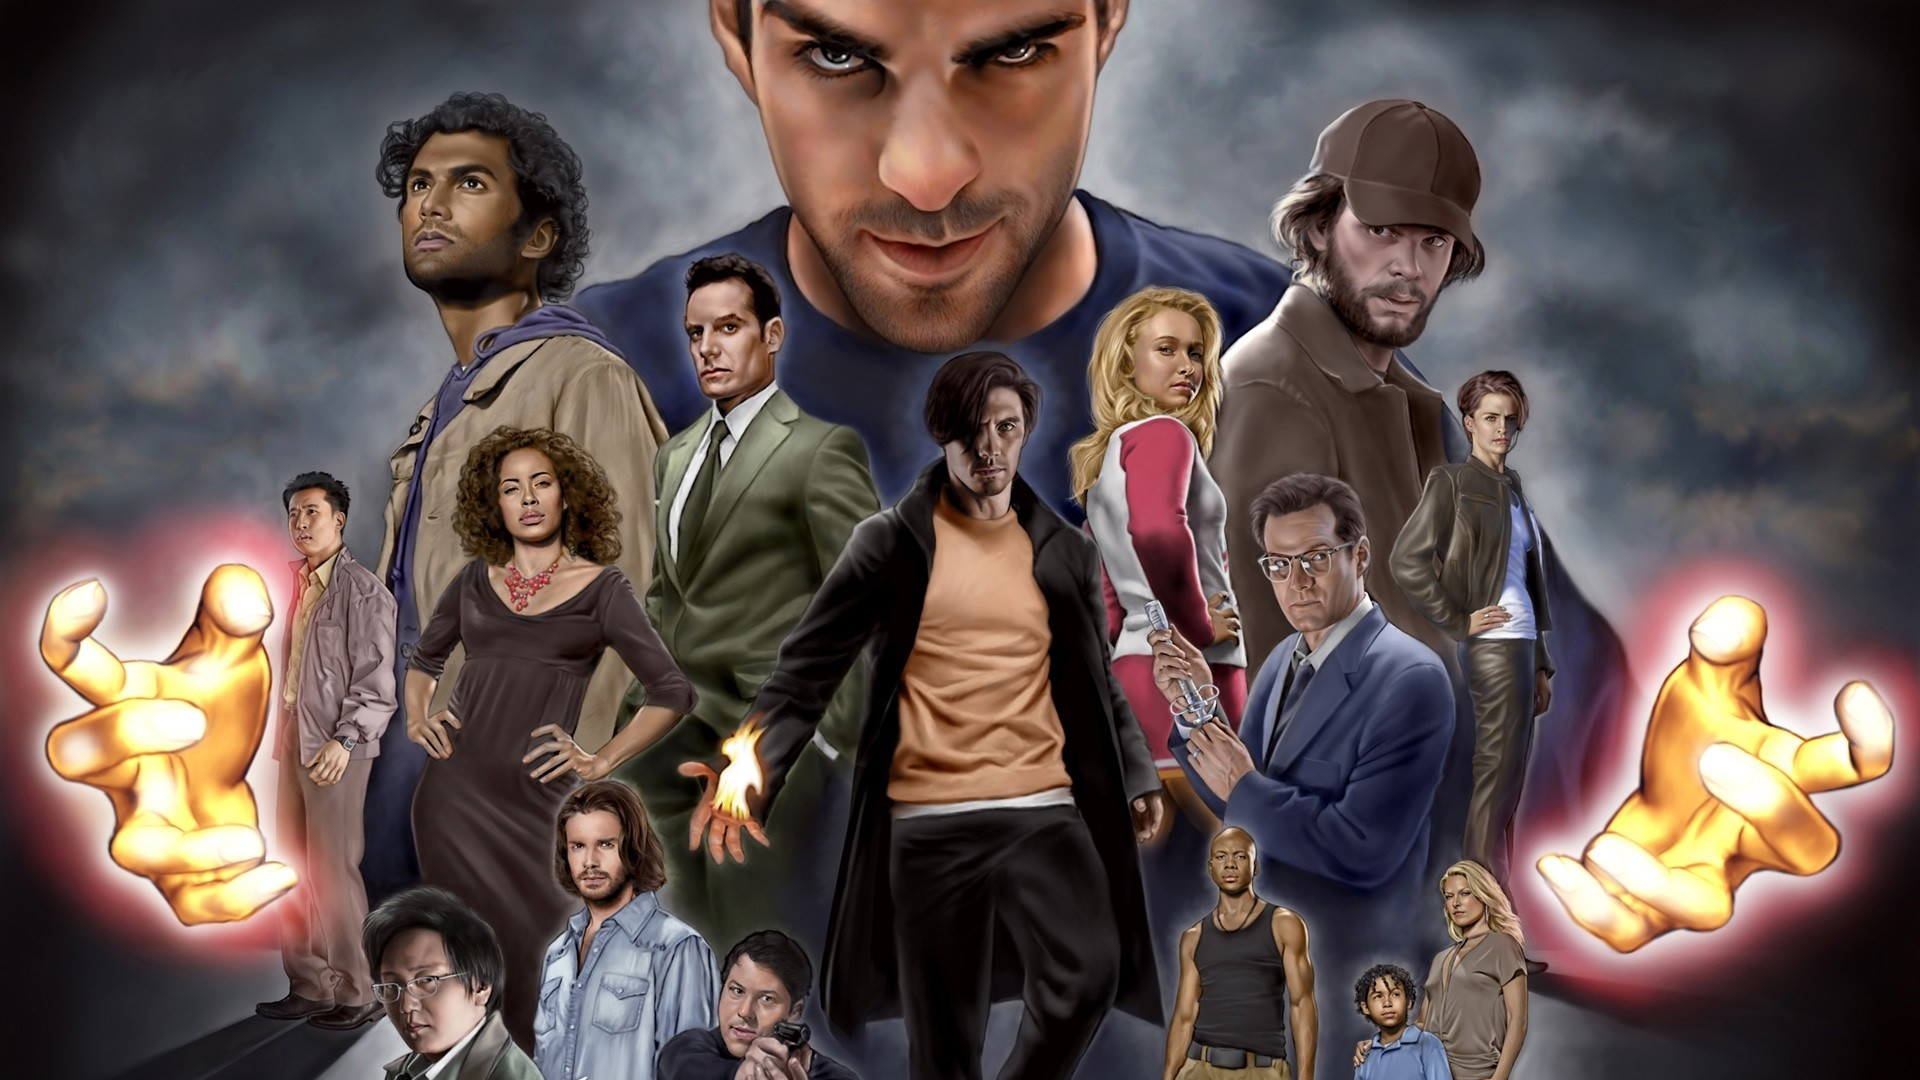 Heroes (TV Series) cartoonish HD Wallpaper